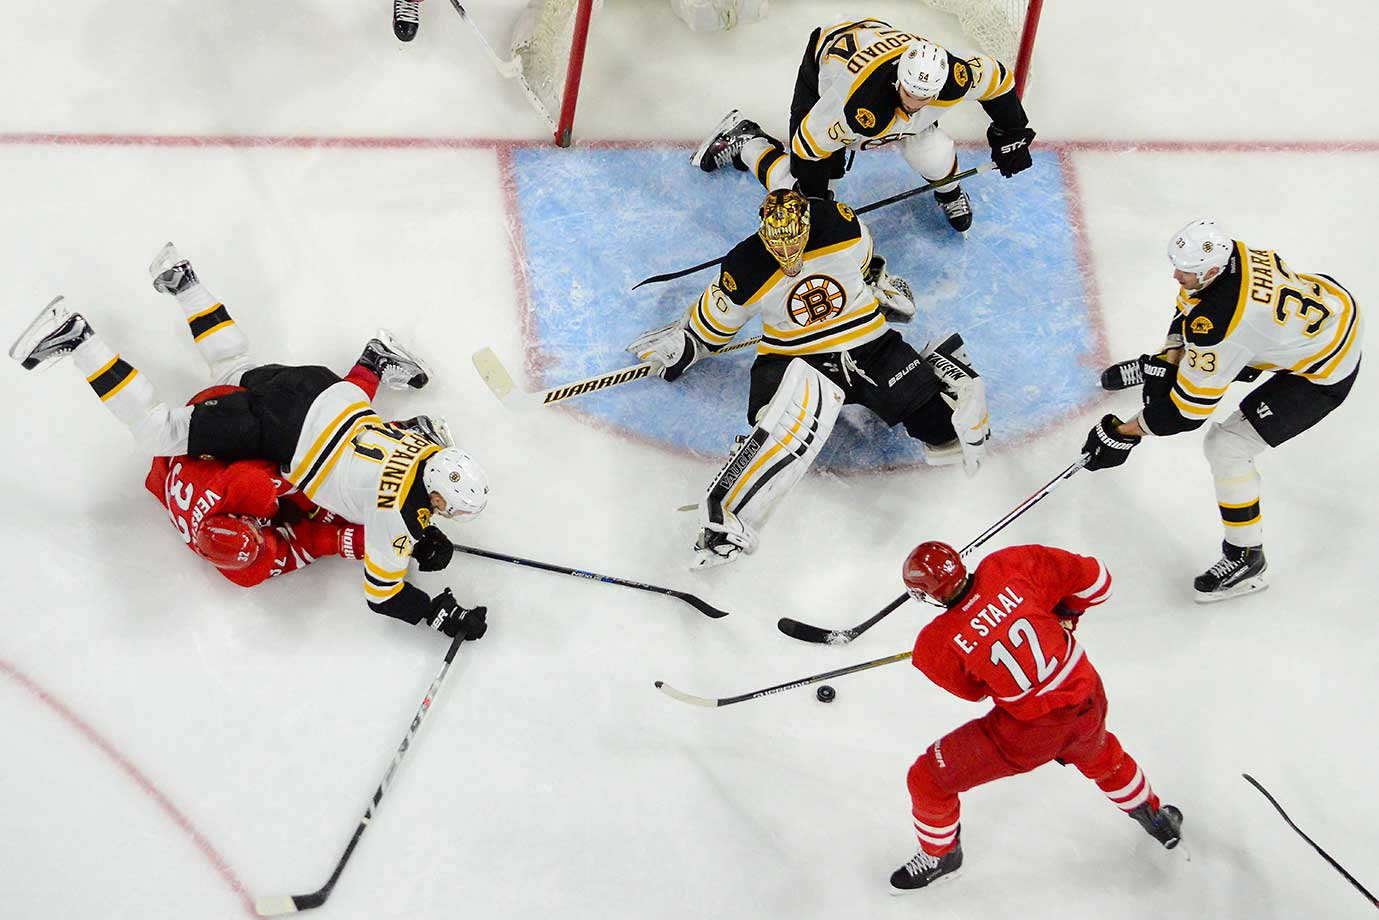 Boston goalie Tuukka Rask defends a shot attempt by Carolina's Kris Versteeg and Eric Staal.